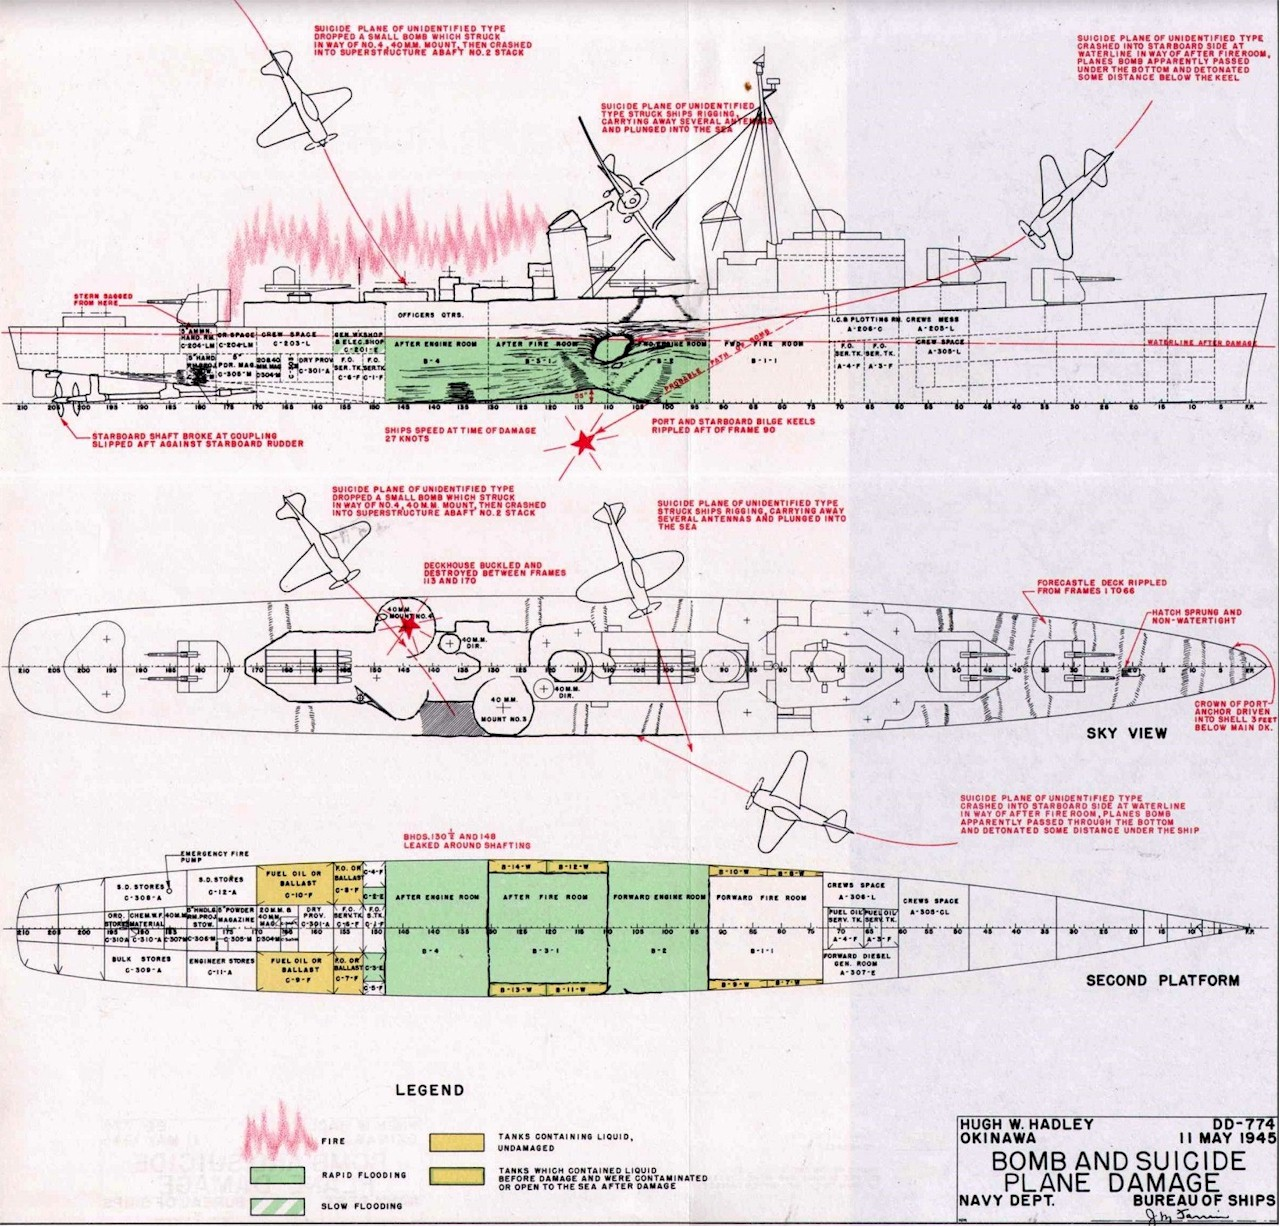 "Diagram of the damage done to the USS Hugh W. Hadley. The ""Unidentified Aircraft"" mentioned were determined to have been MXY-7 Ohka sucide planes. Though the Hadley survived the attack, it was damaged beyond repair."